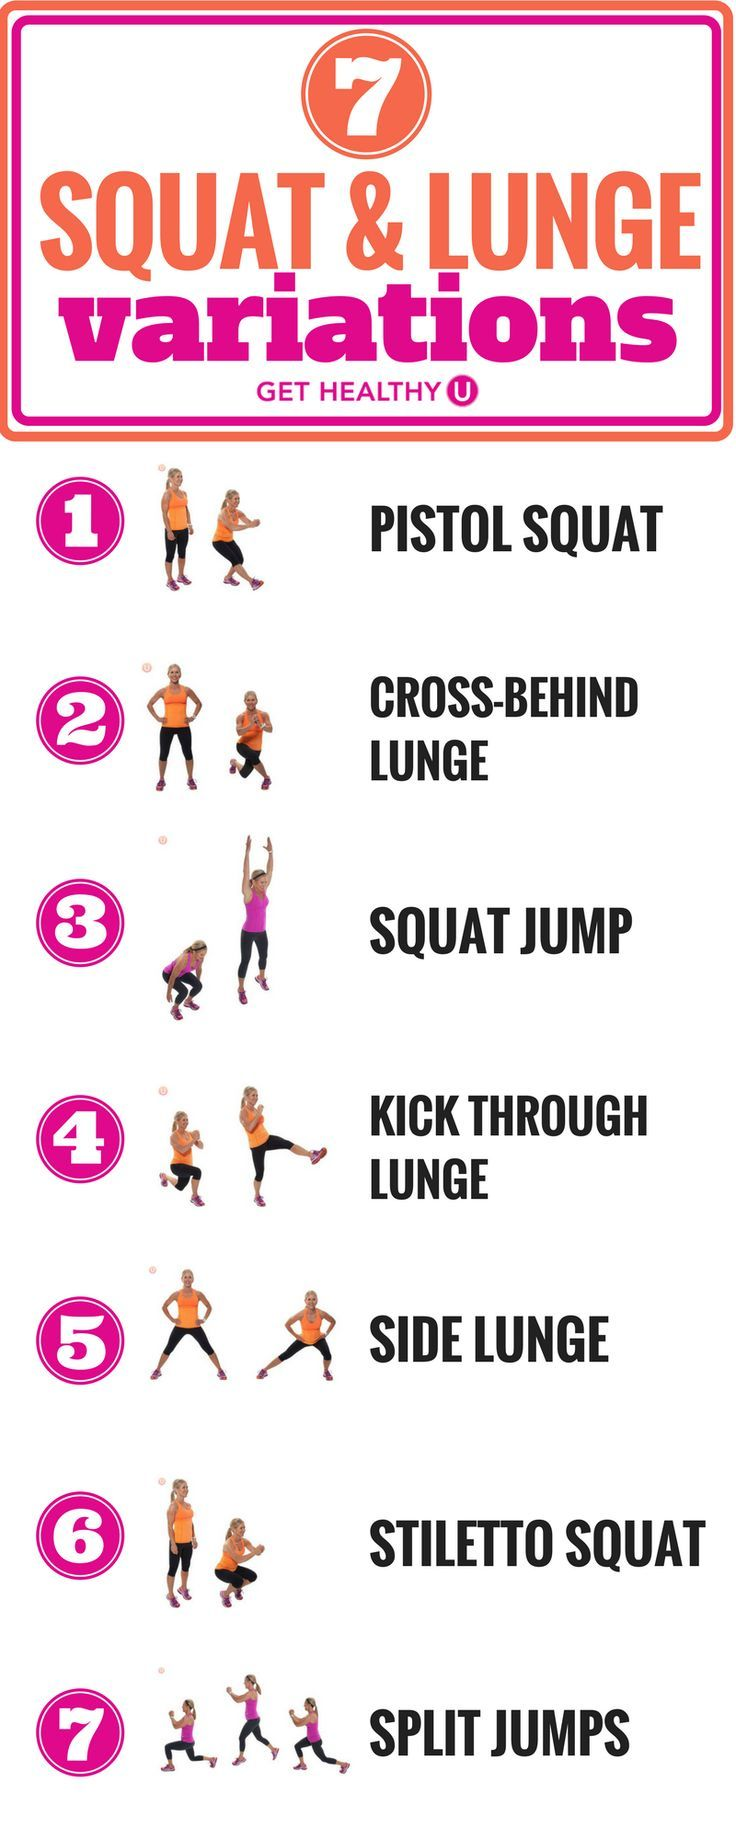 Squats and lunges are some of the best bodyweight exercises around. We've pulled out 7 of the best squat and lunge variations that will build muscle and tone up those legs! Not only are these moves super effective, they also allow you to switch up your lower-body workout routine from just standard lunges and squats, preventing the inevitable boredom that comes from any workout routine.